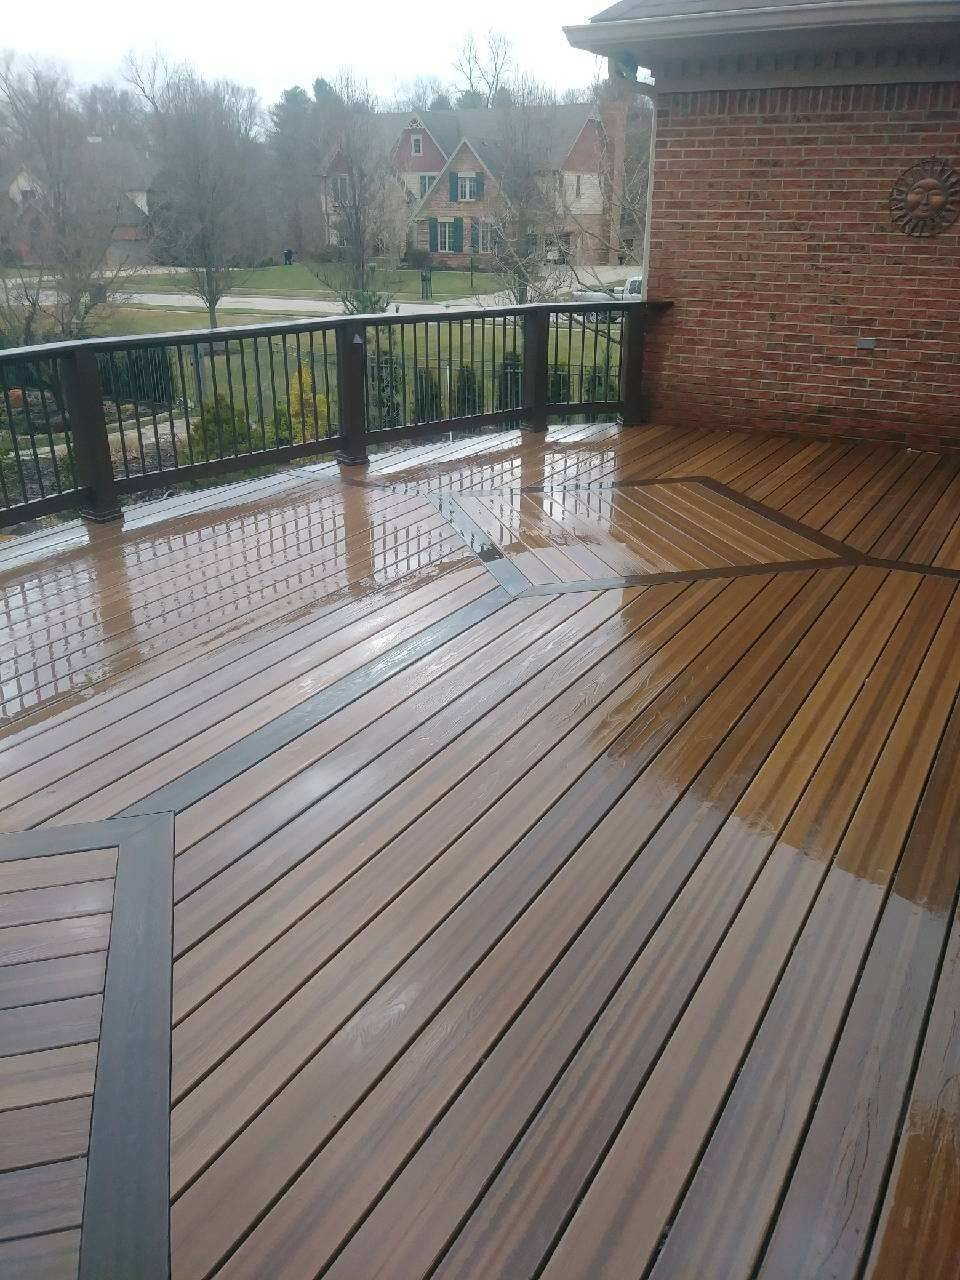 New second story deck